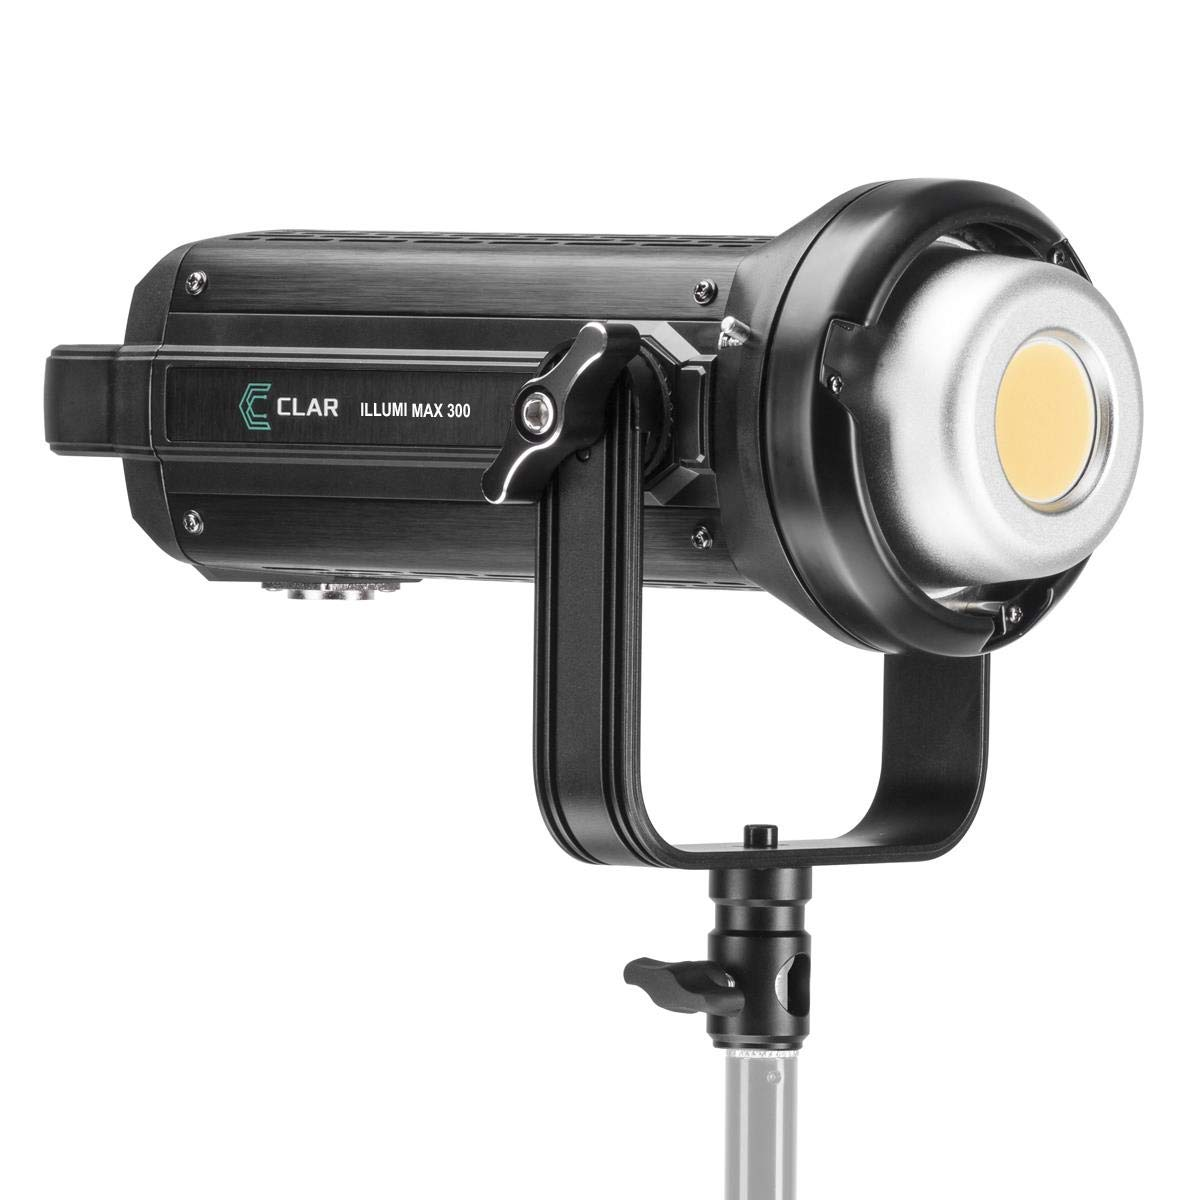 CLAR Illumi Max 300 High Power 5600K LED Light (132,000 lux @ 0.5m